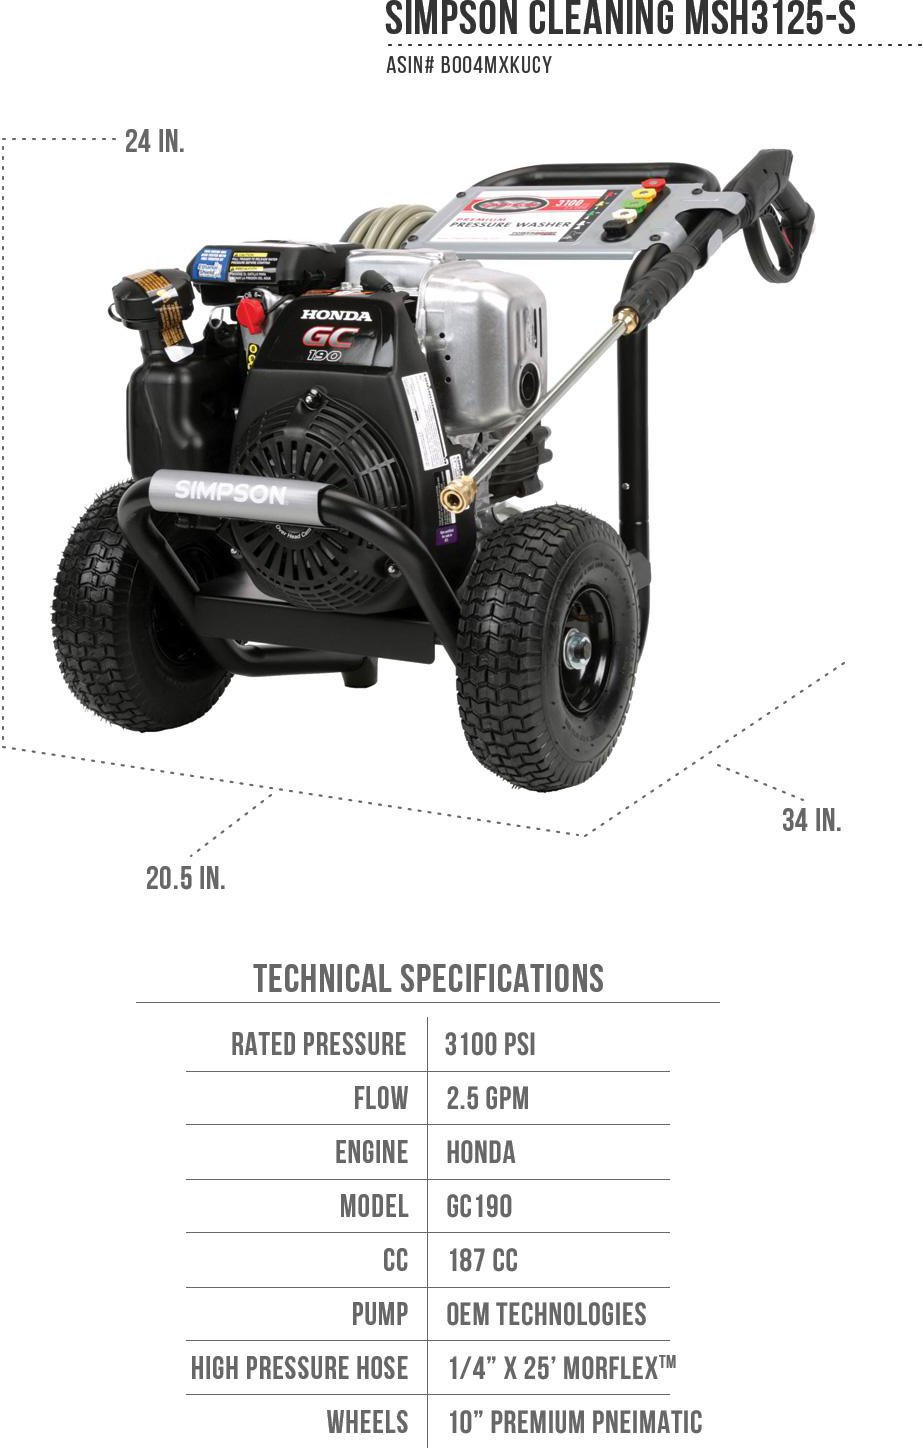 SIMPSON Cleaning MSH3125-S Pressure Washer Specification Sheet